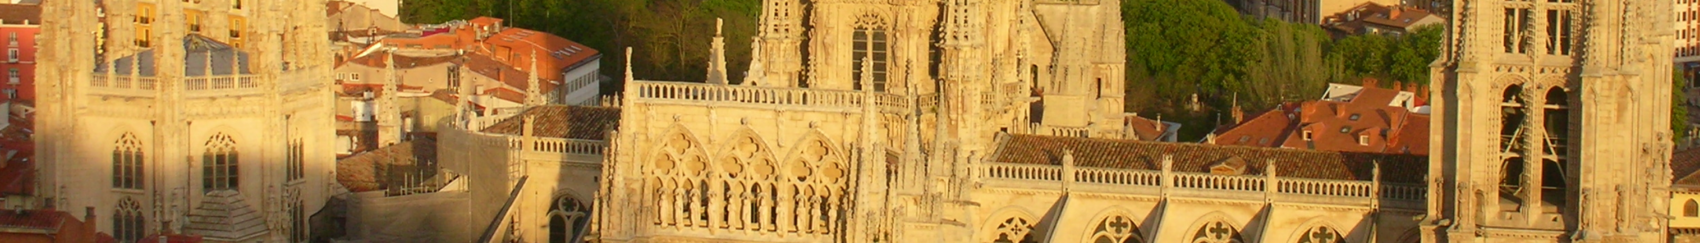 Locapedias de Burgos